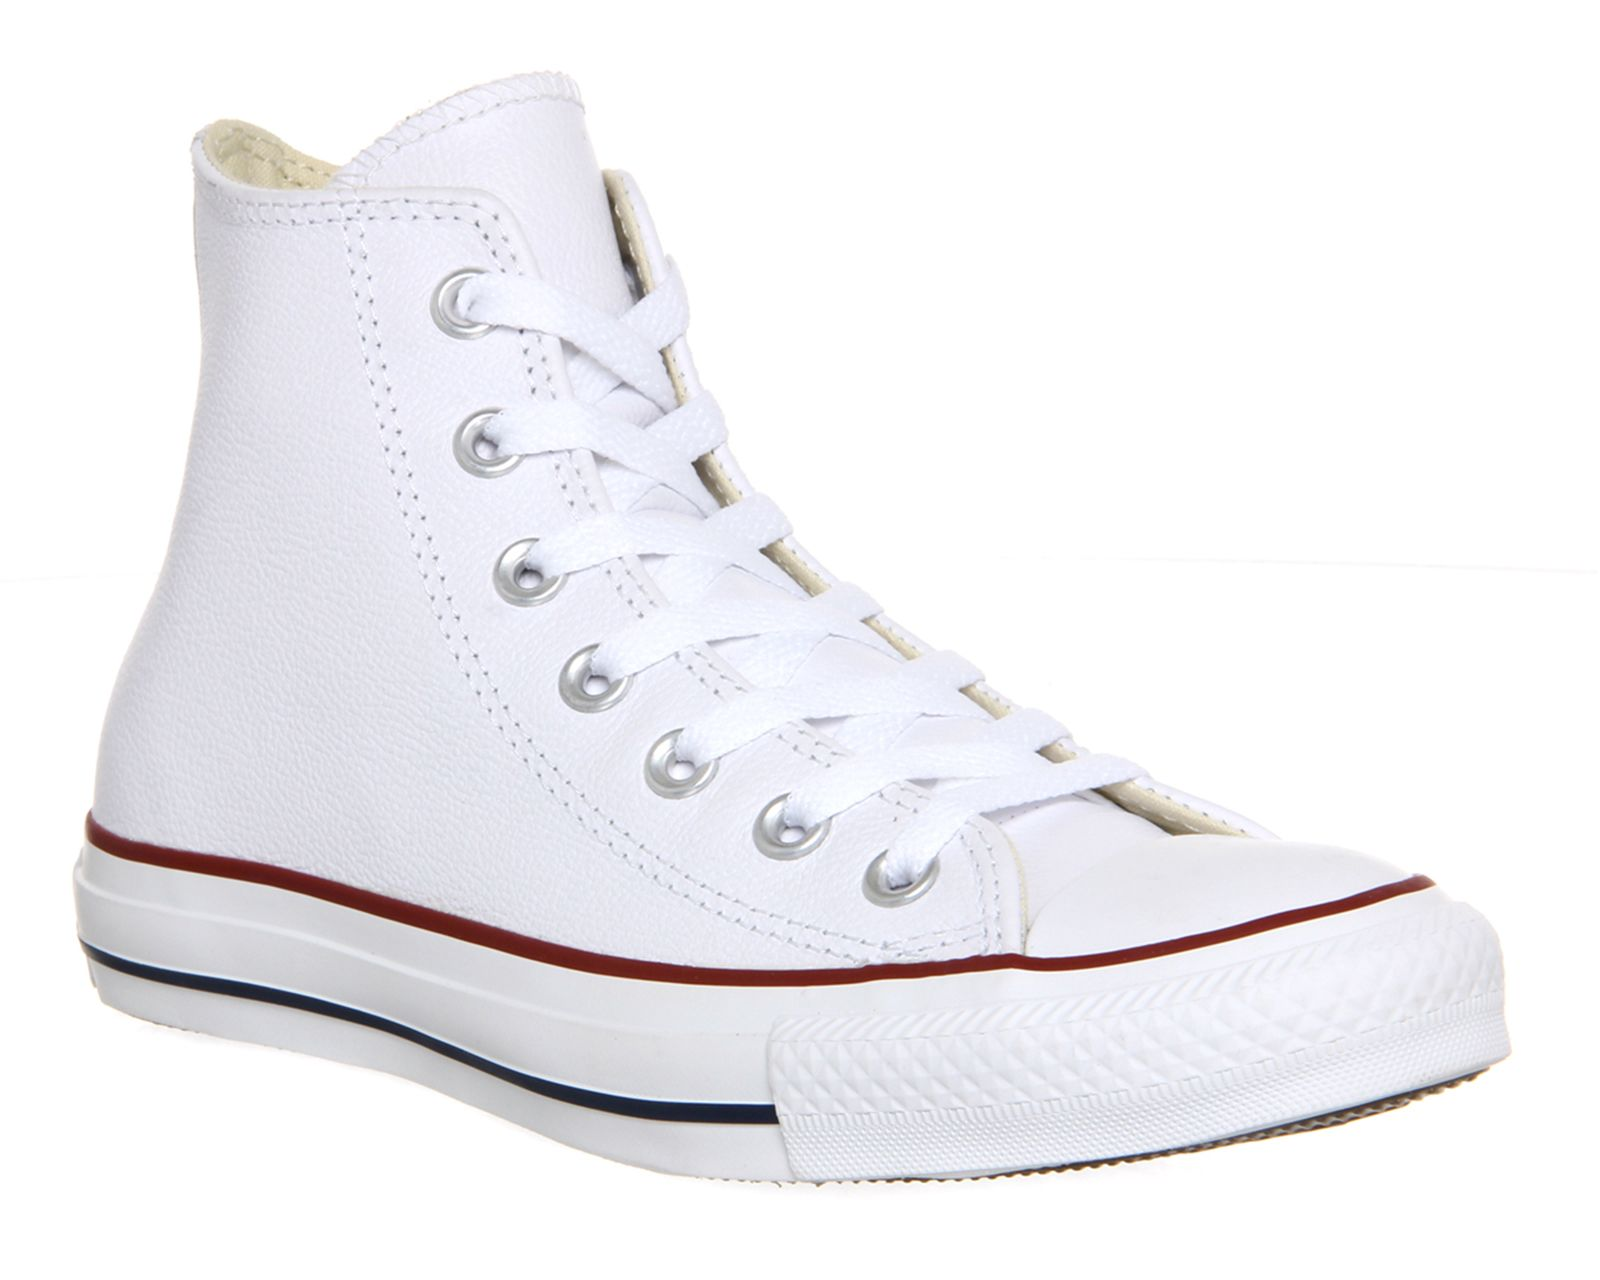 Converse Converse All Star HI Leather Trainers, White